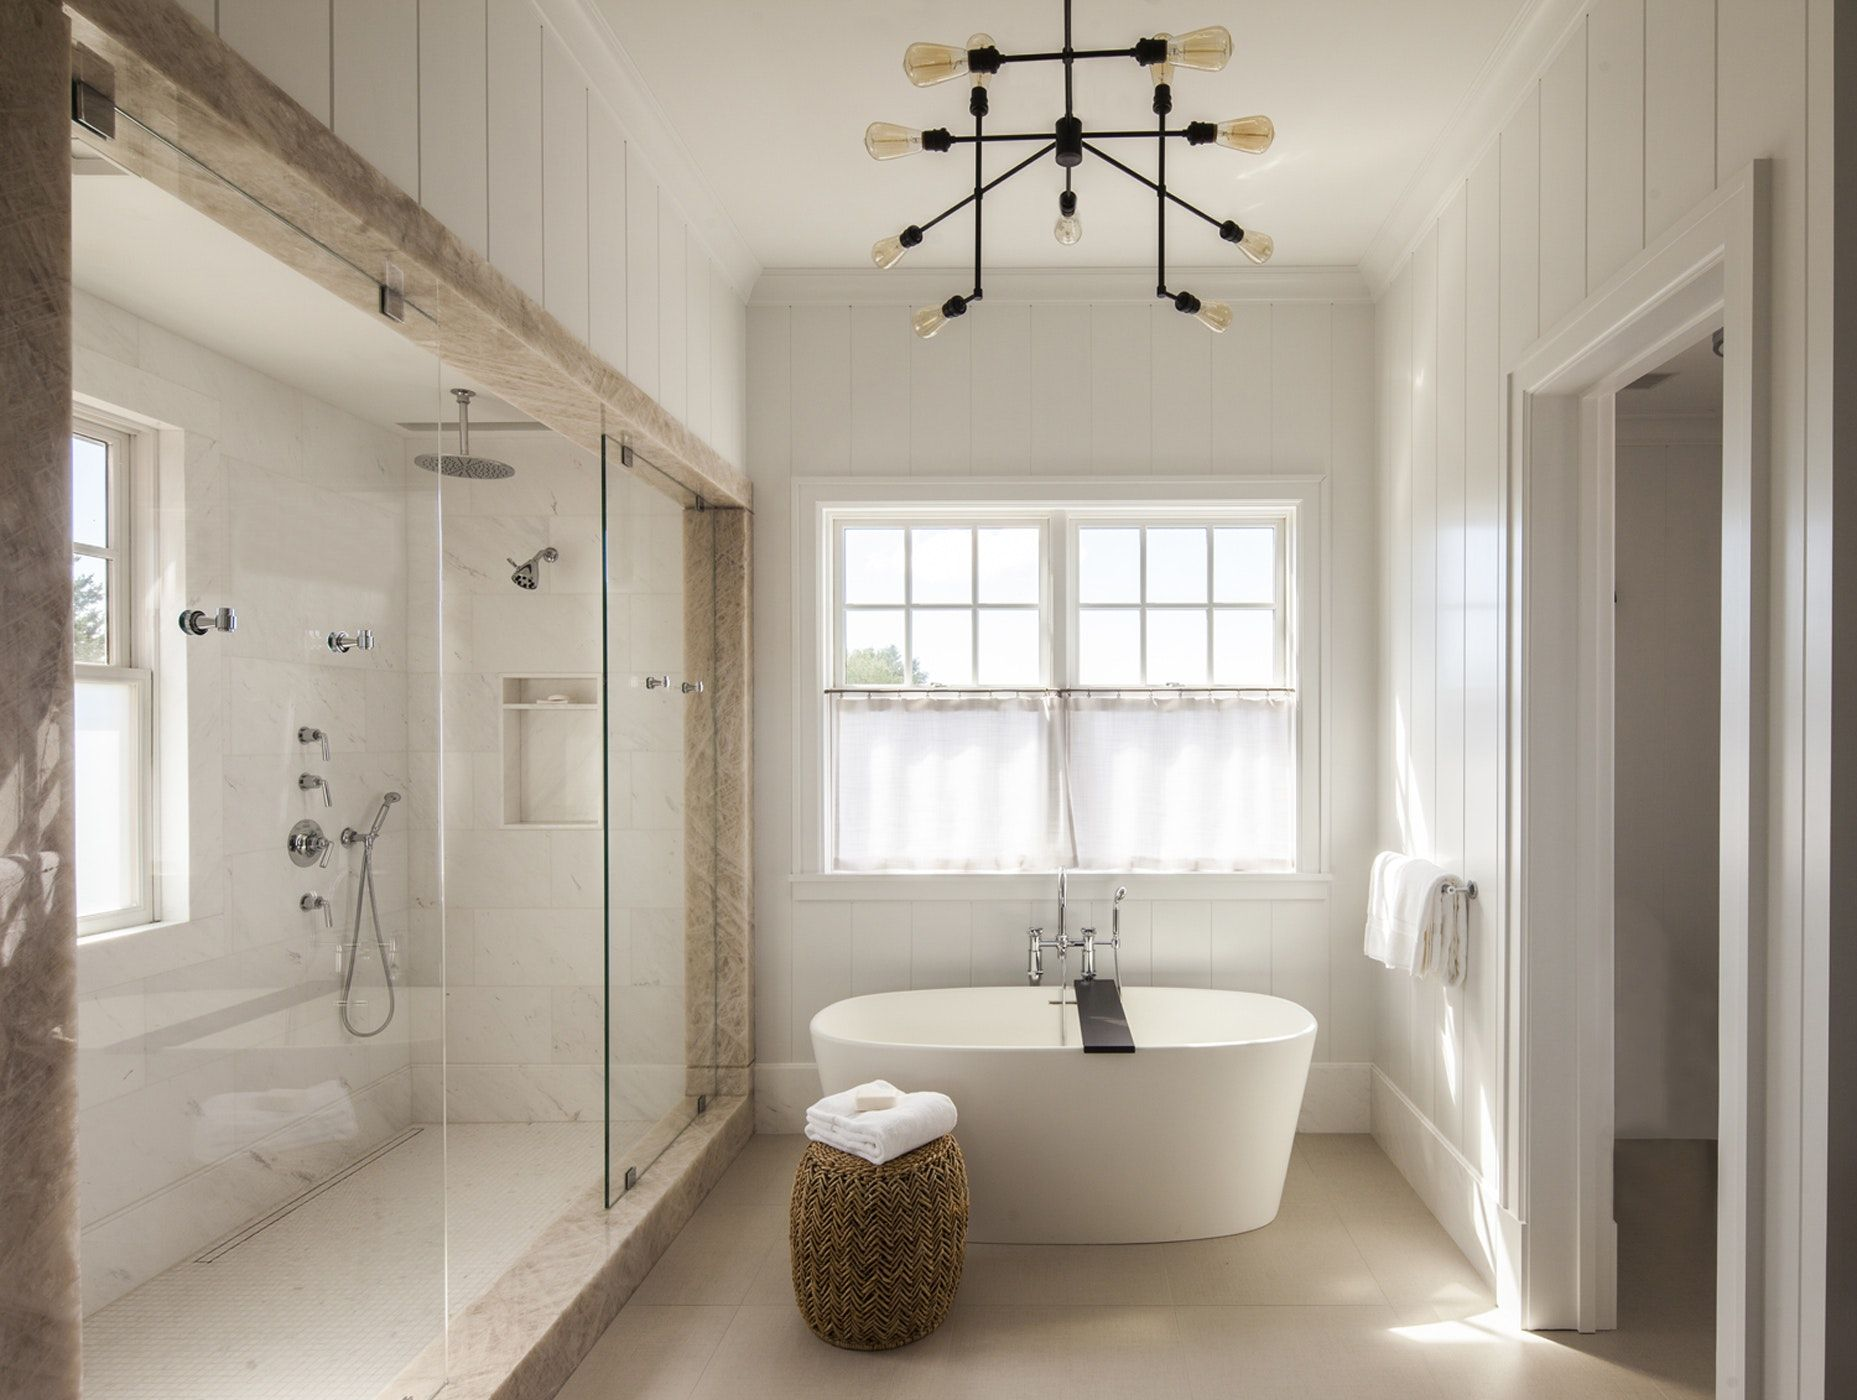 Hamptons Residence Master Bathroom W Neutral Palette Freestanding Tub By Stephens Design Group Free Standing Tub Minimalist Bathroom Design Bathroom Design